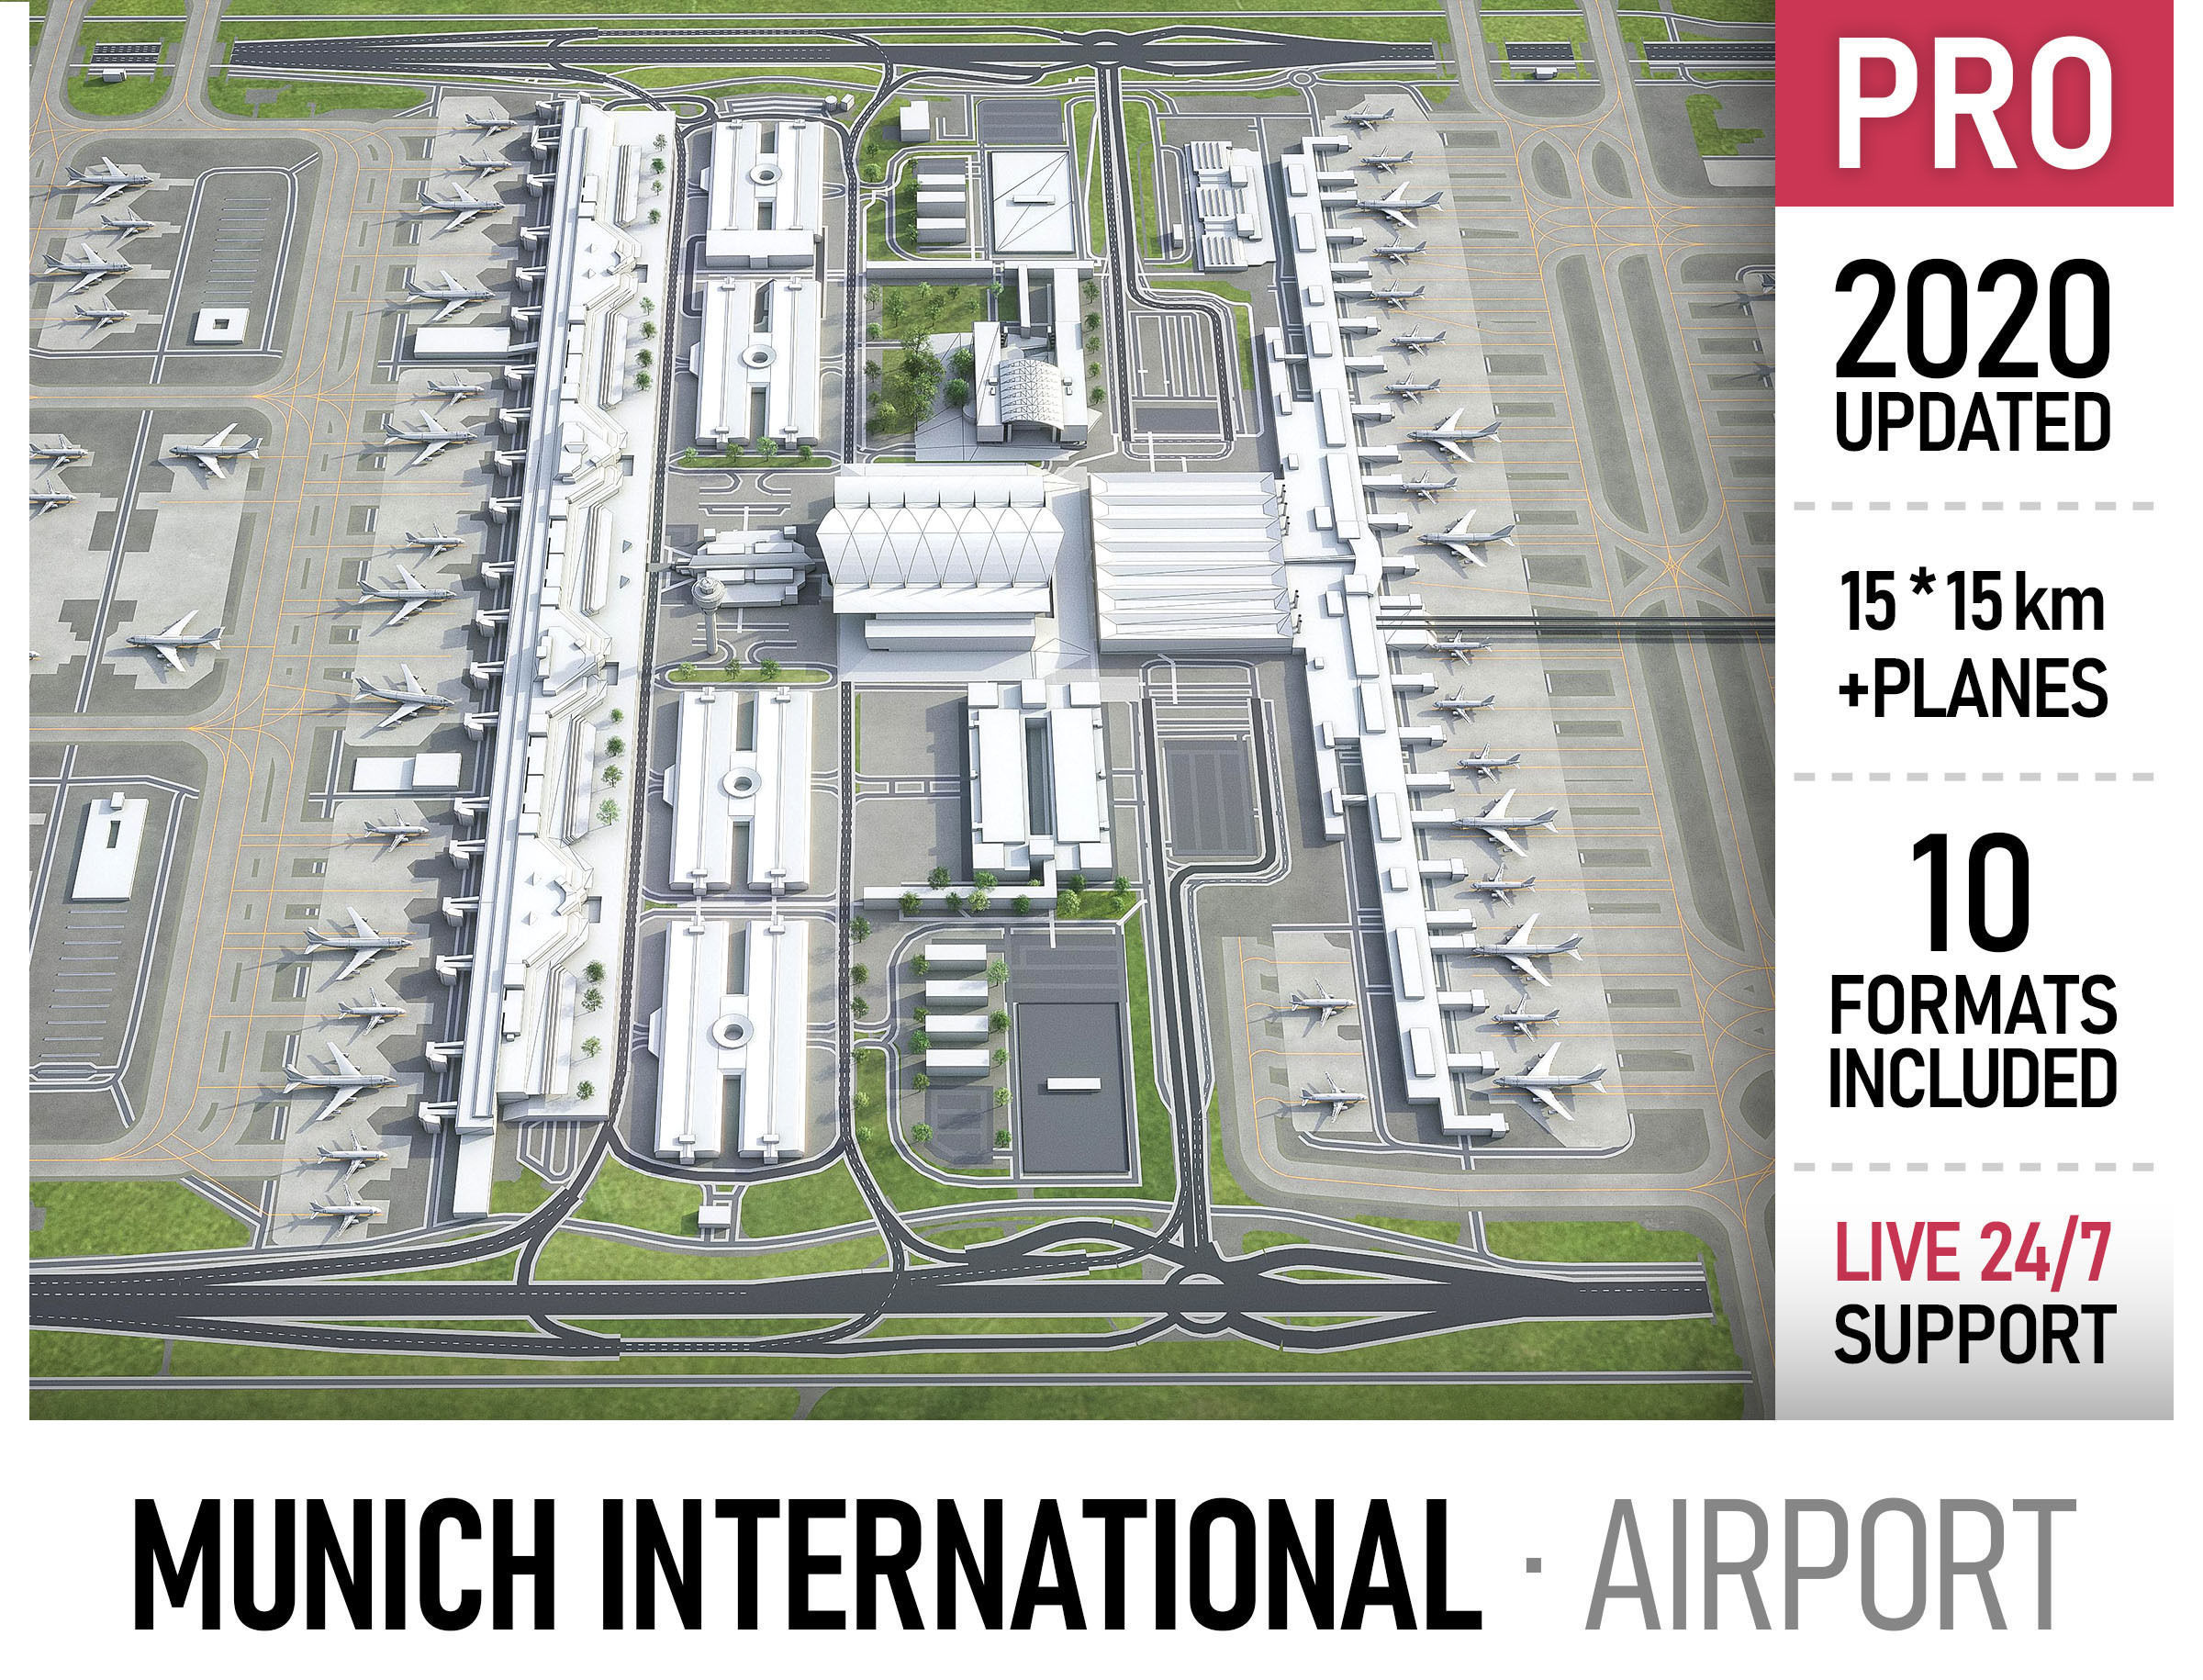 Munich International Airport - MUC